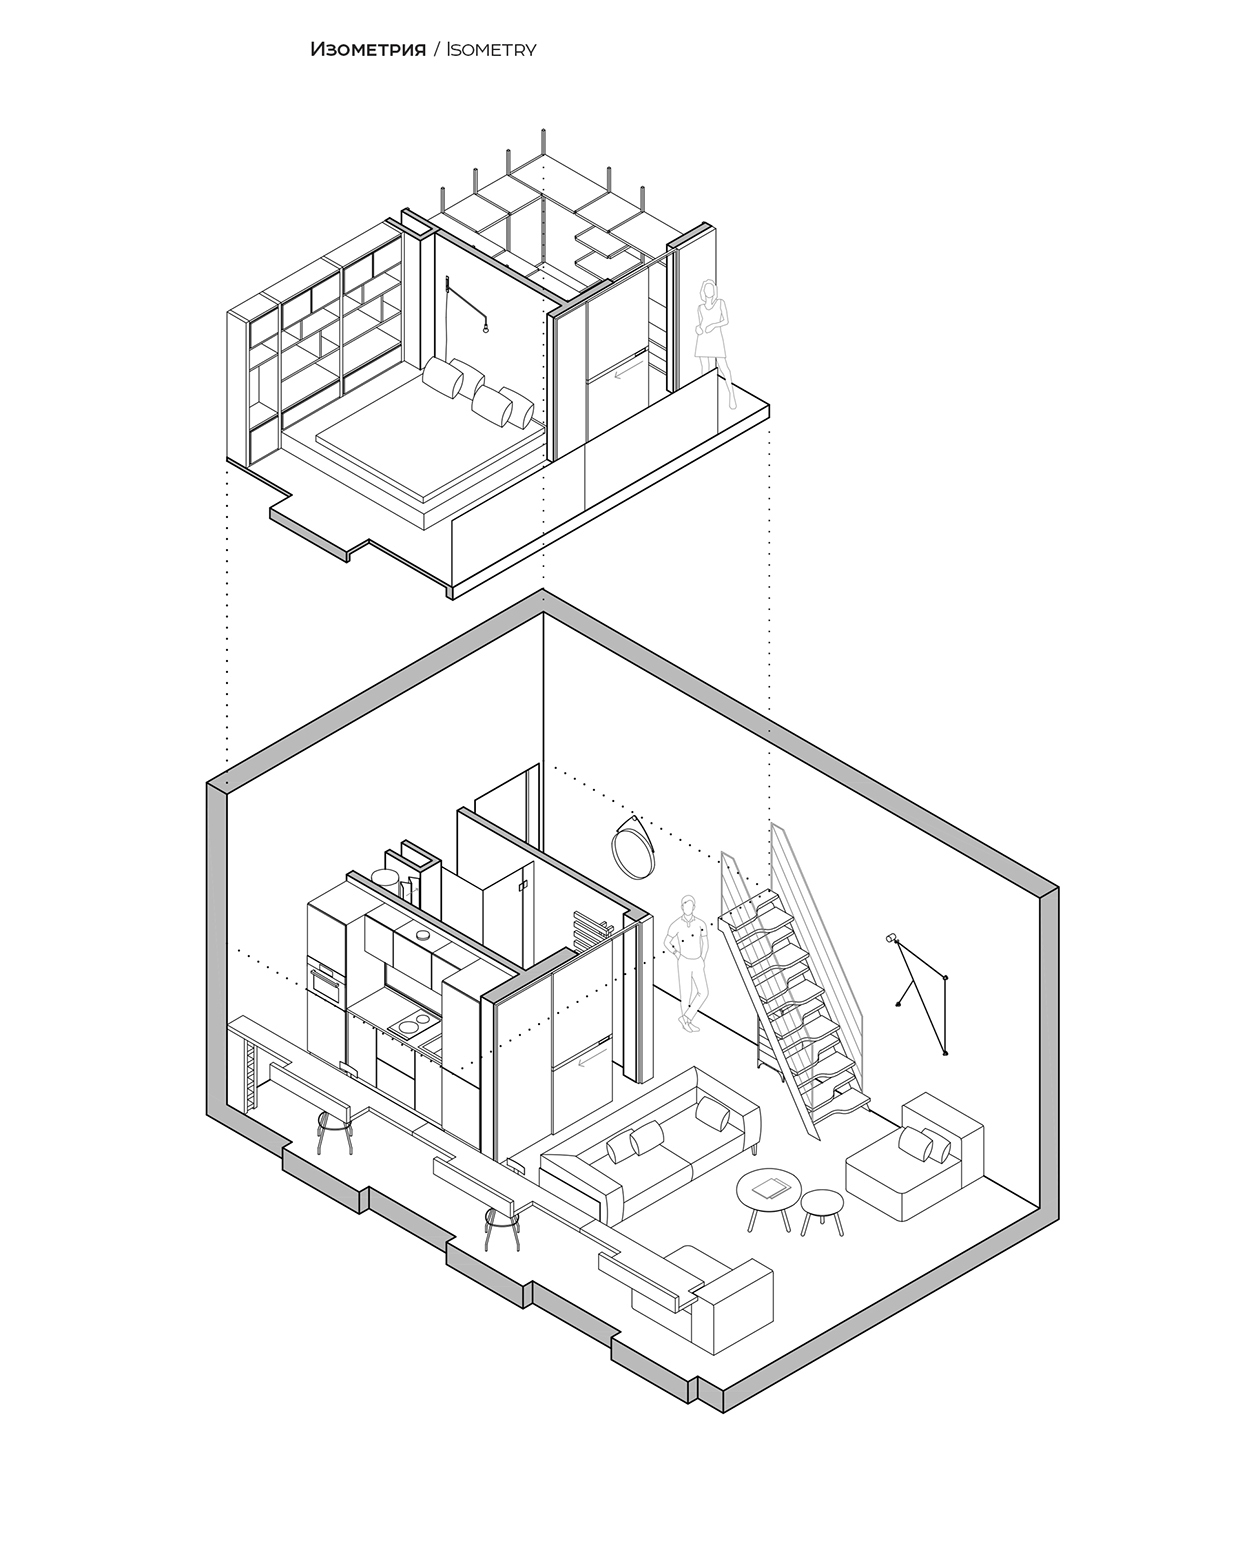 apartment drawing at getdrawings free for personal use Garage Wiring-Diagram 1240x1550 loft apartment layout interior design ideas